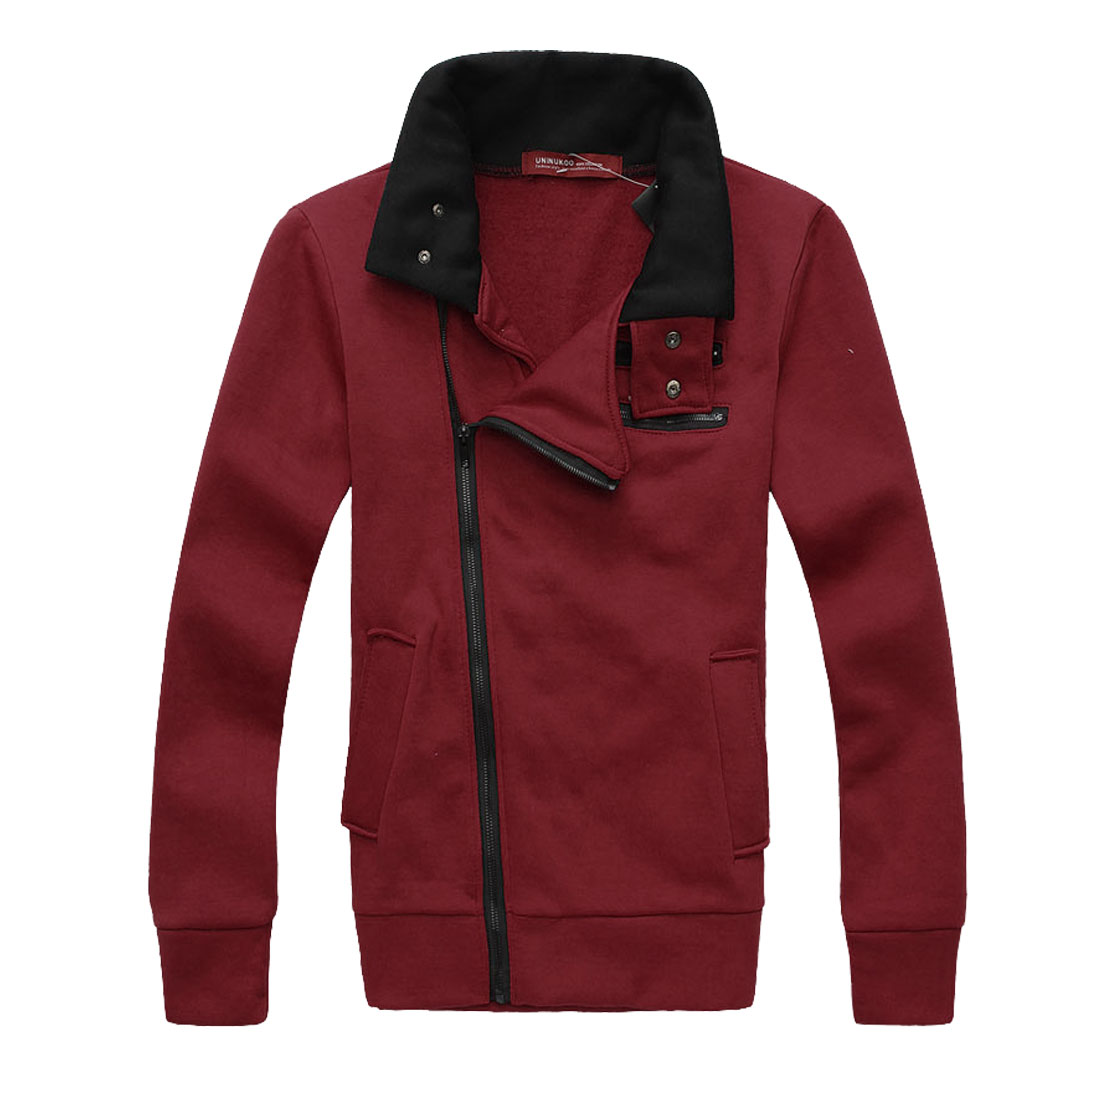 Mans Stand Collar Long Sleeve Slant Zip-Up Closure Burgundy Jacket Coat M